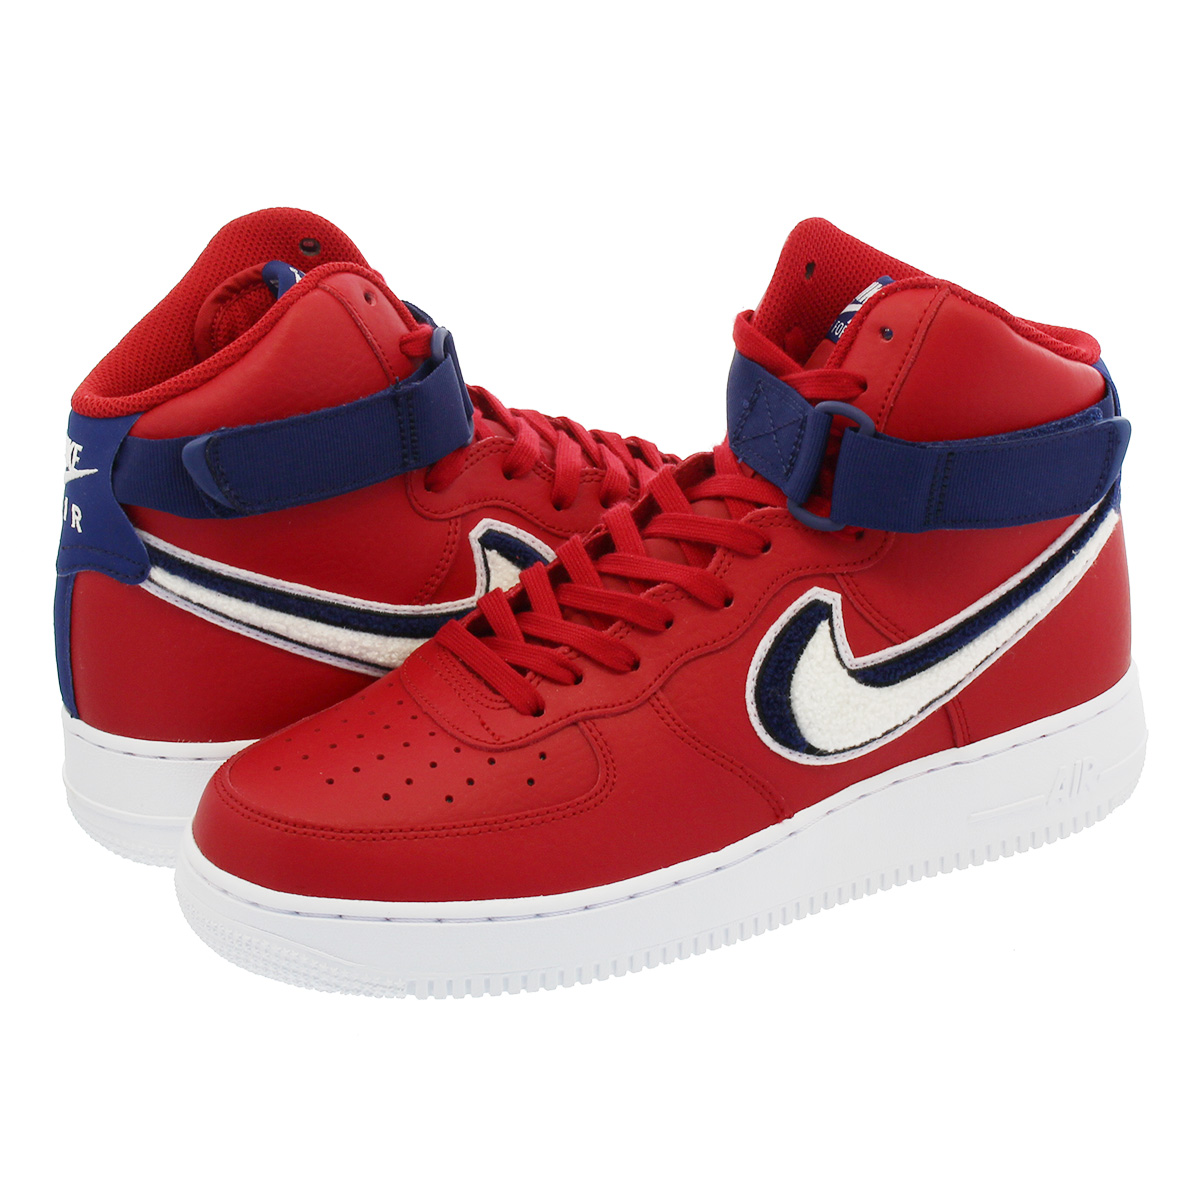 NIKE AIR FORCE 1 HIGH 07 LV8 Nike air force 1 high 07 LV8 GYM  RED/WHITE/VARSITY BLUE 806,403-603